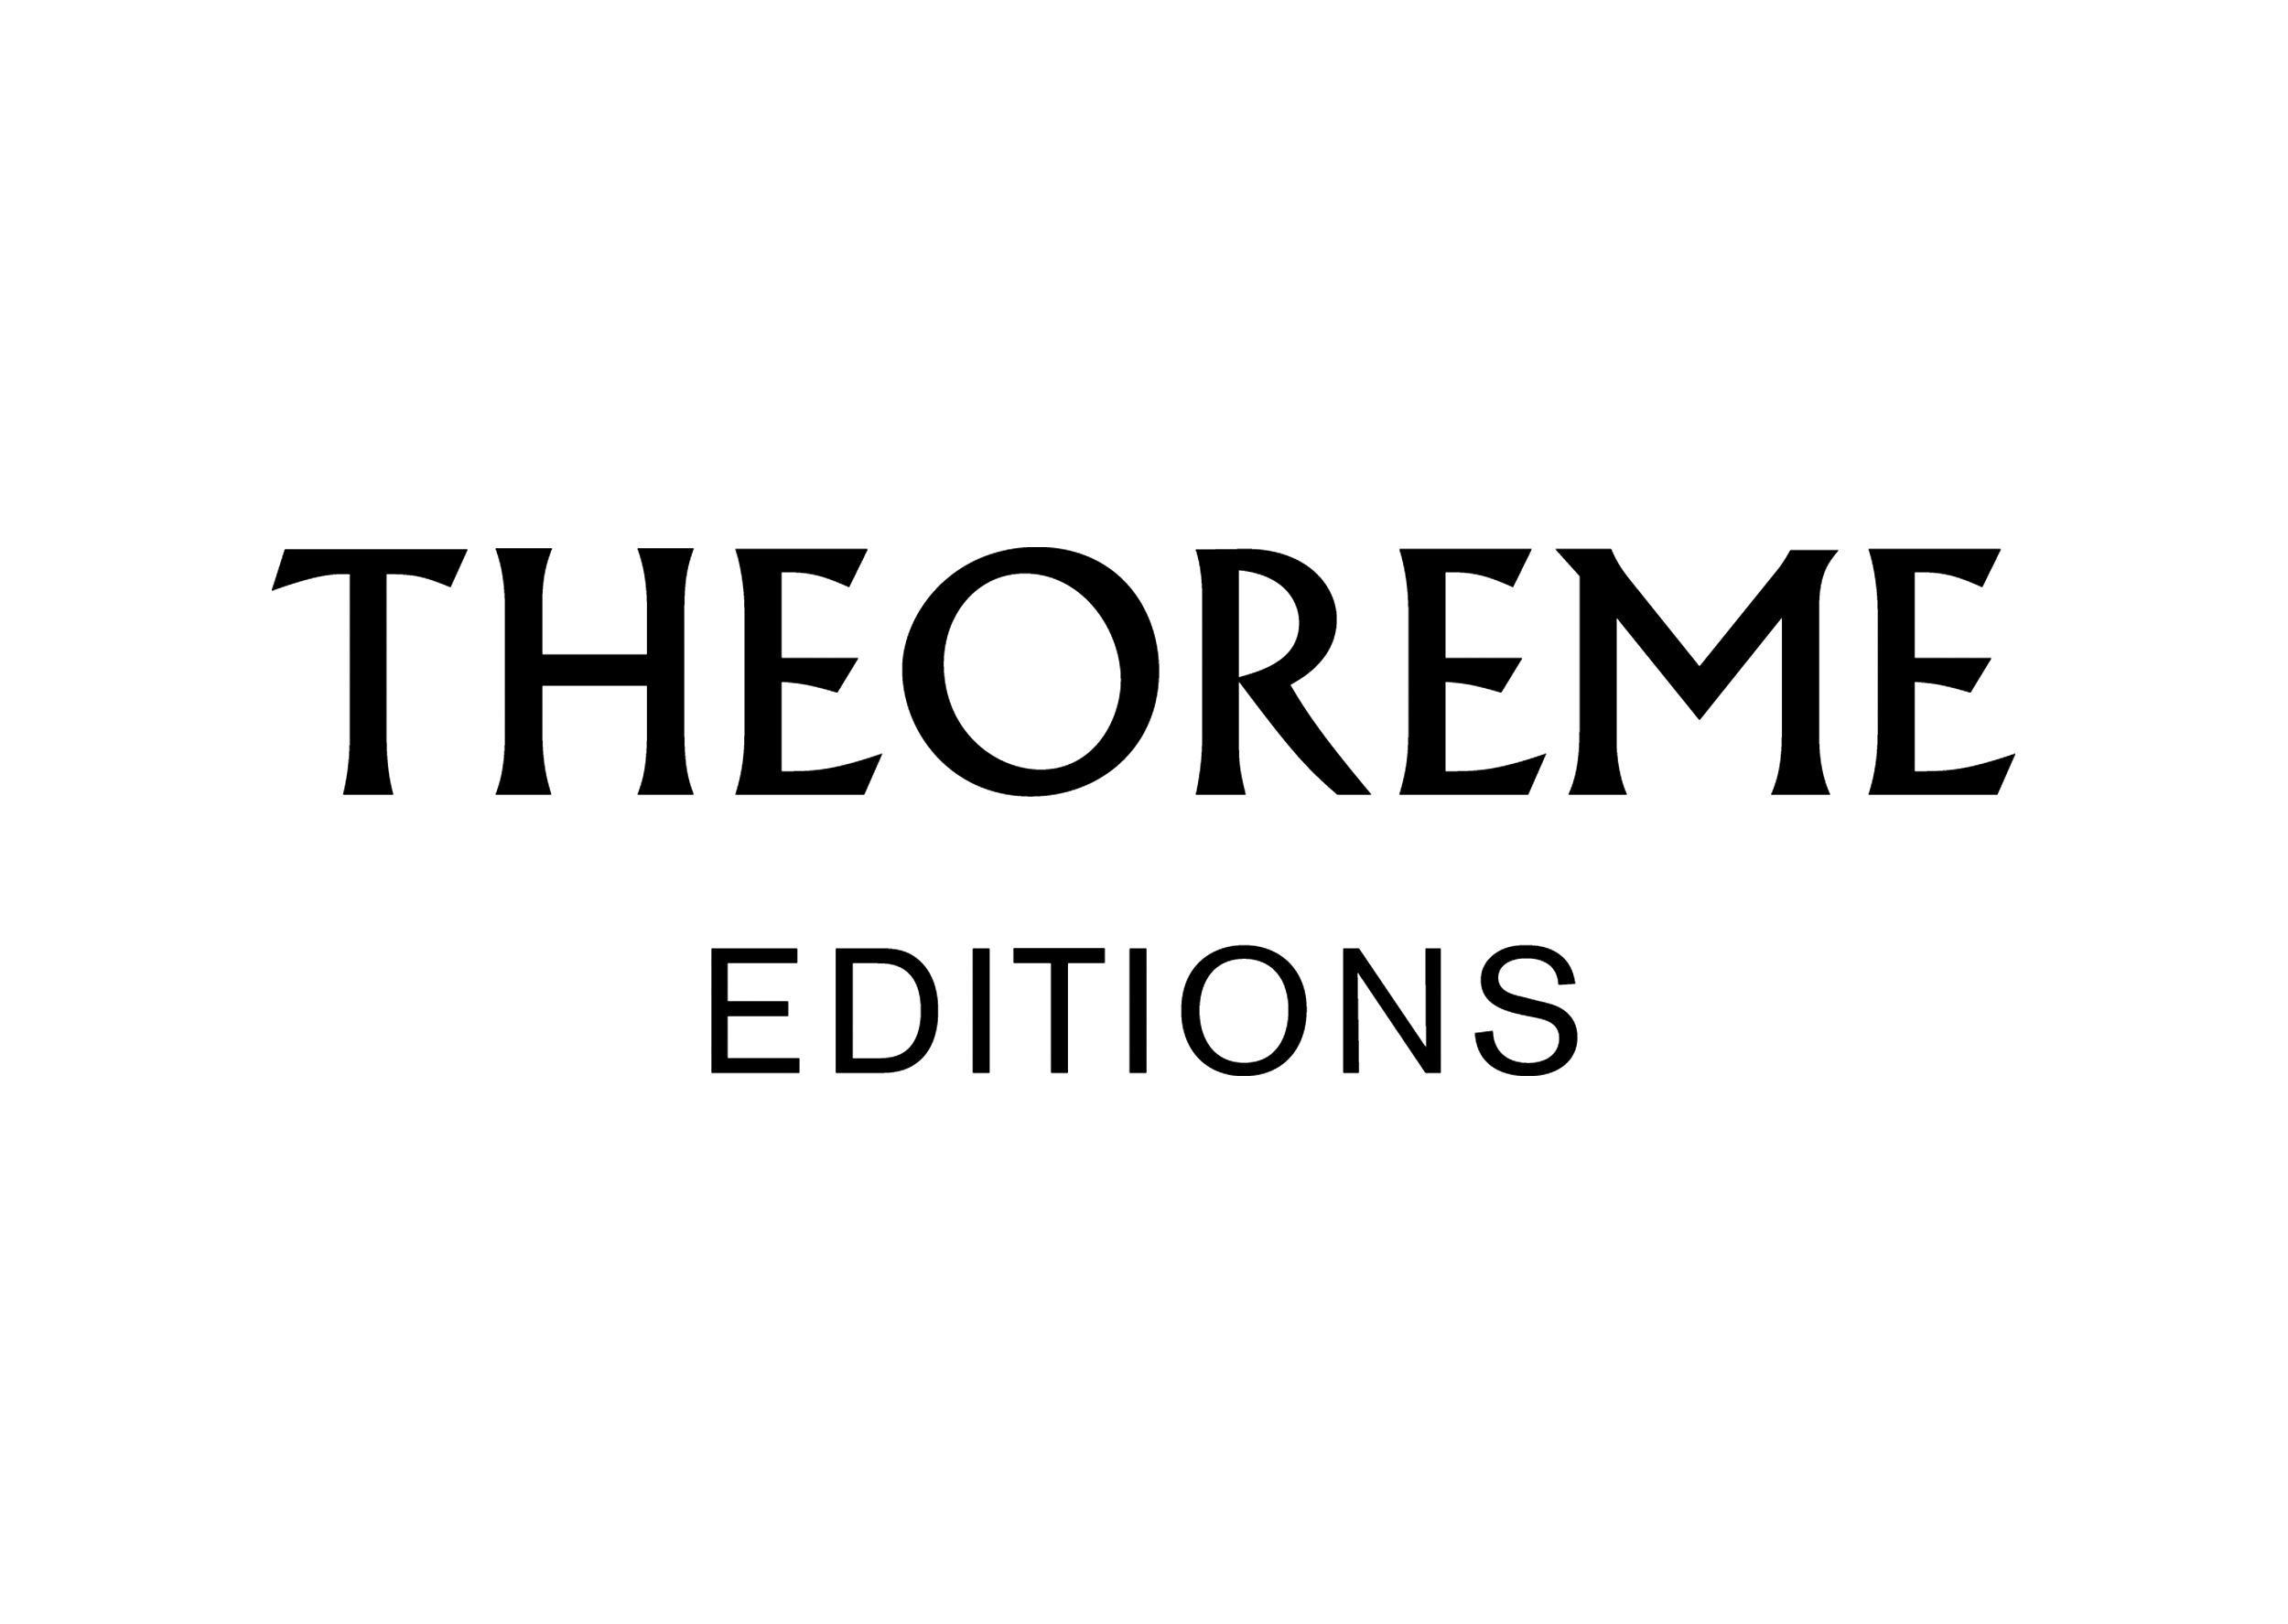 THEOREME EDITIONS  _ FURNITURE AND OBJECTS DESIGNED BY EMERGING TALENTS MANUFACTURED BY EXPERT ARTISANS _ LAUNCH 6TH APRIL 2019 _ SALONE DEL MOBILE _ SIAM _ VIA SANTA MARTA, 18 _ MILANO